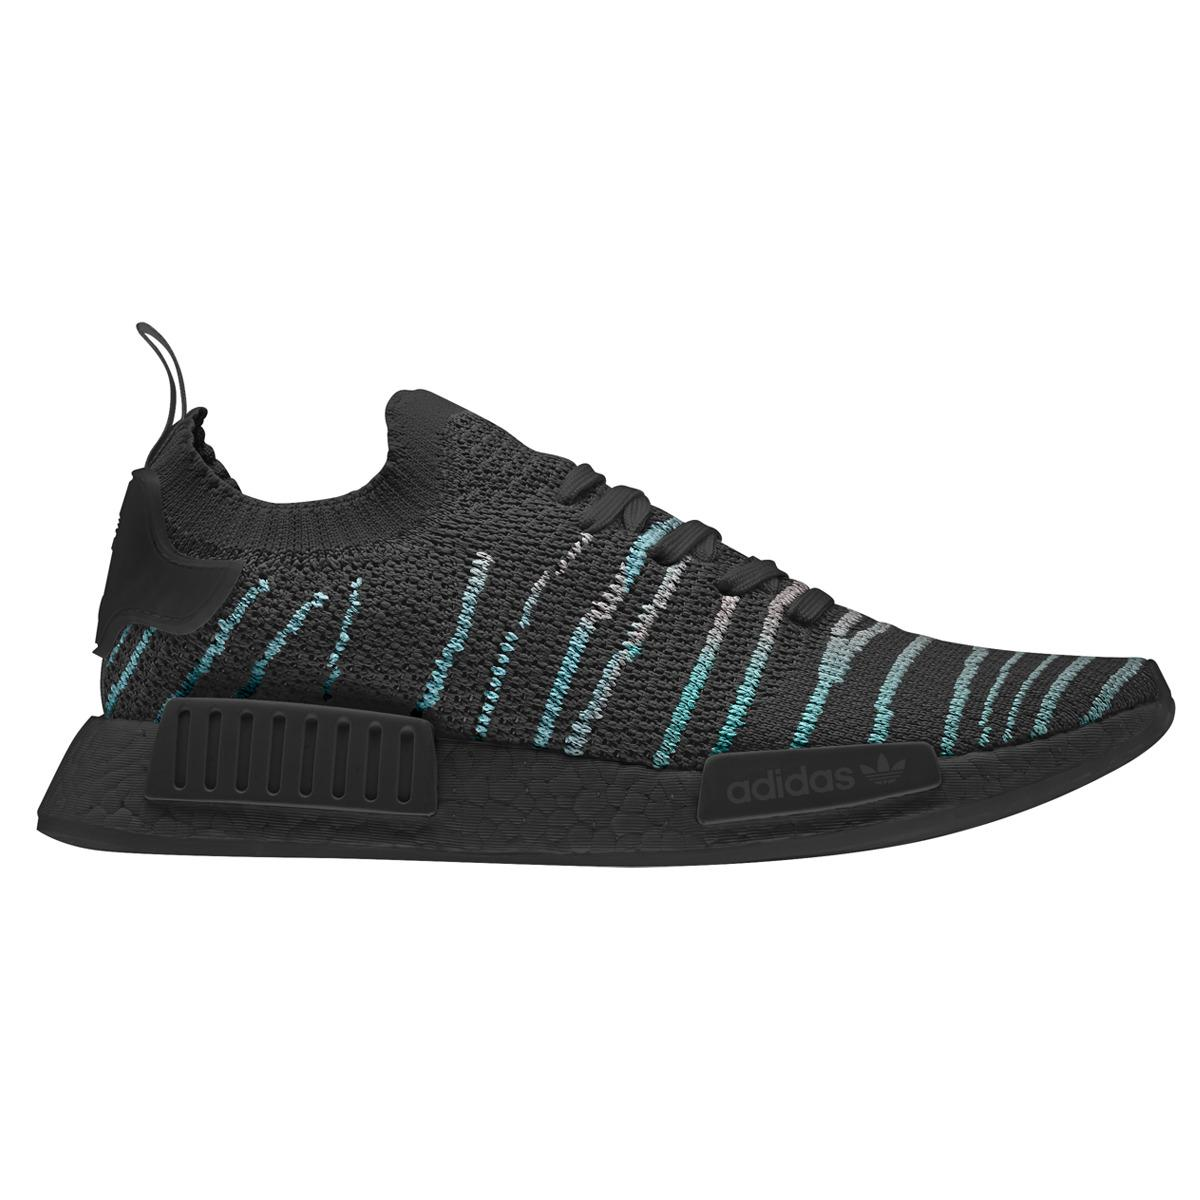 0ee3fd8eb Lyst - adidas Originals Nmd r1 Stlt Parley Pk Casual Trainers in ...